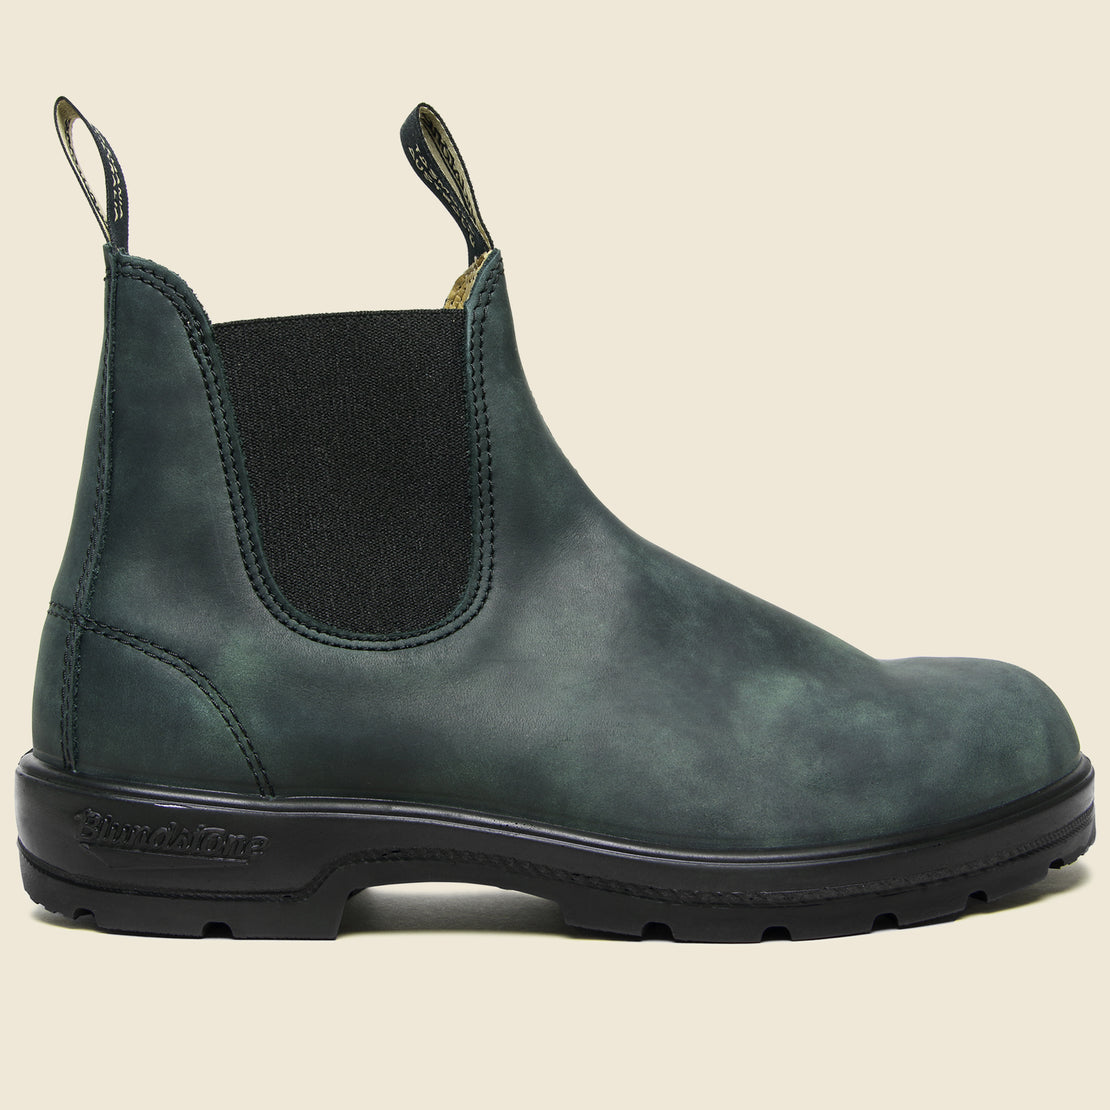 Blundstone 587 Super Series Boot - Rustic Black